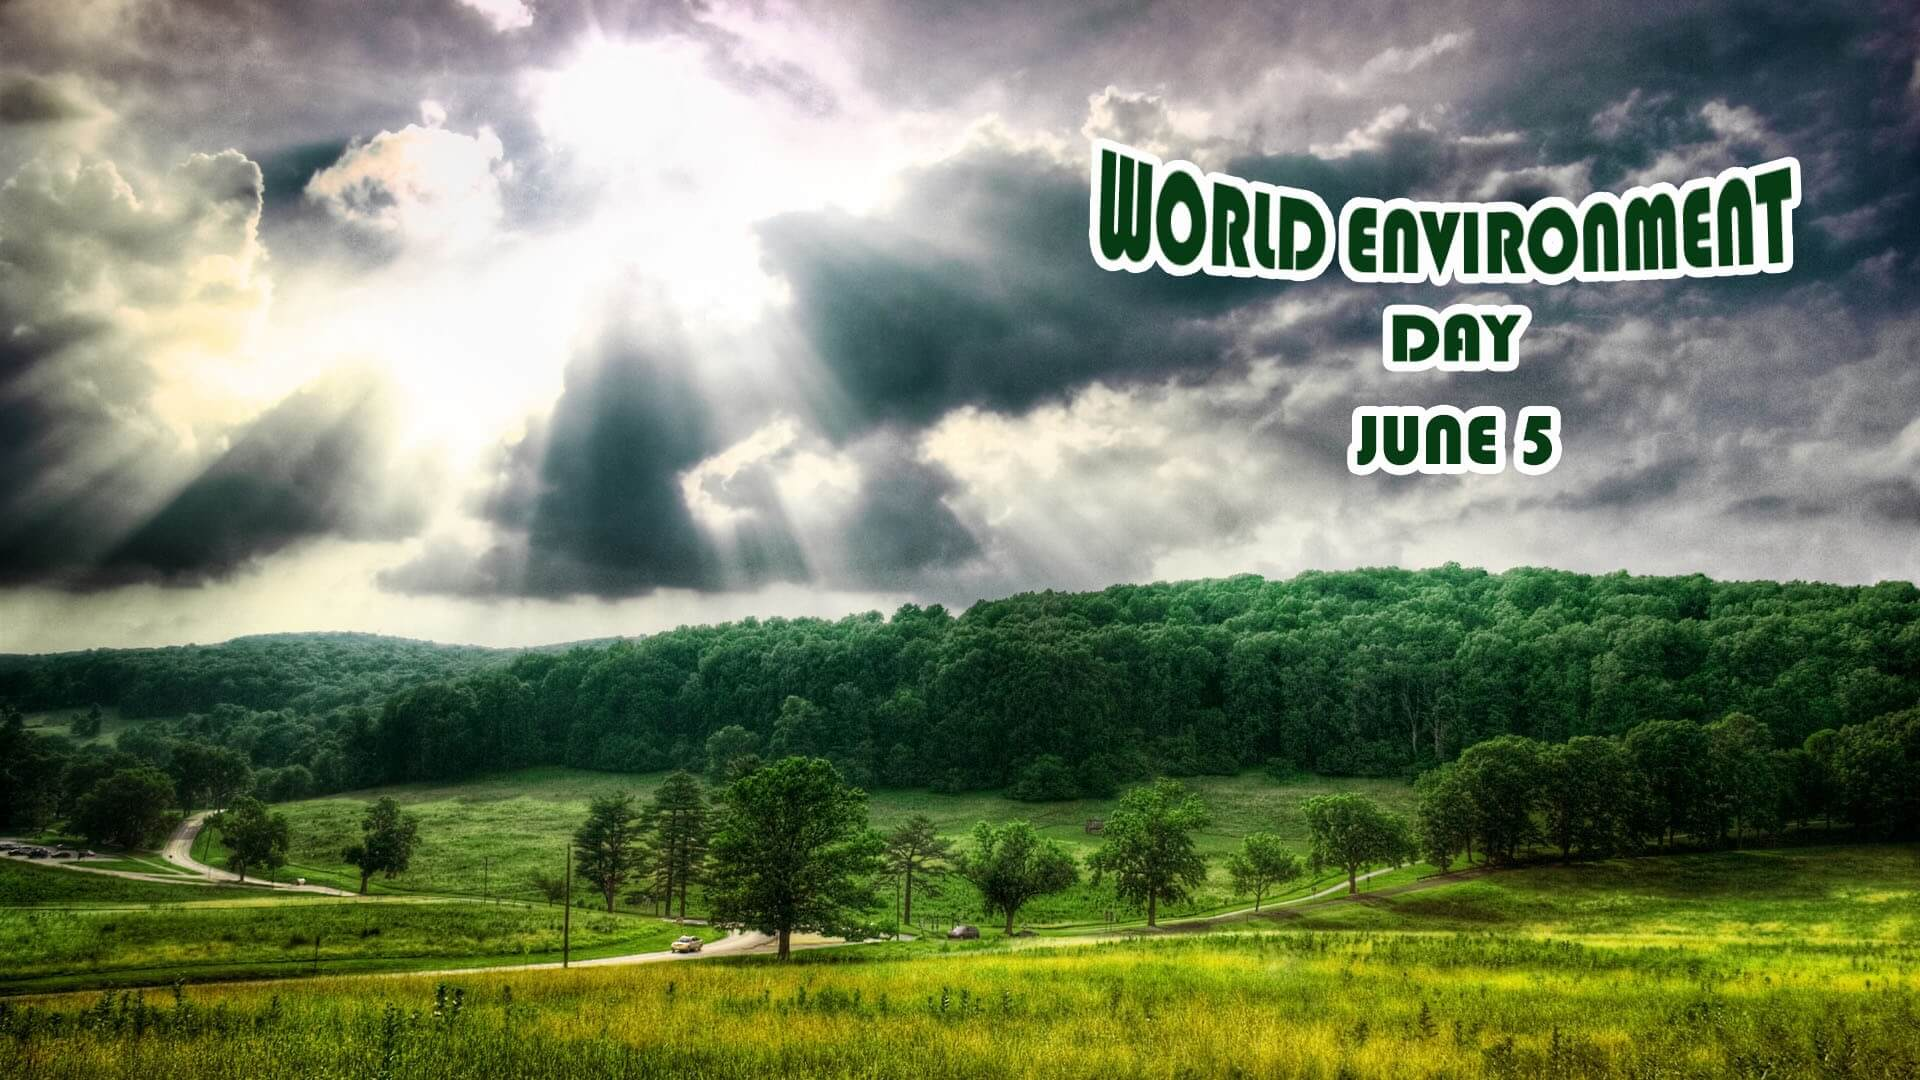 environment day save trees forest nature wallpaper